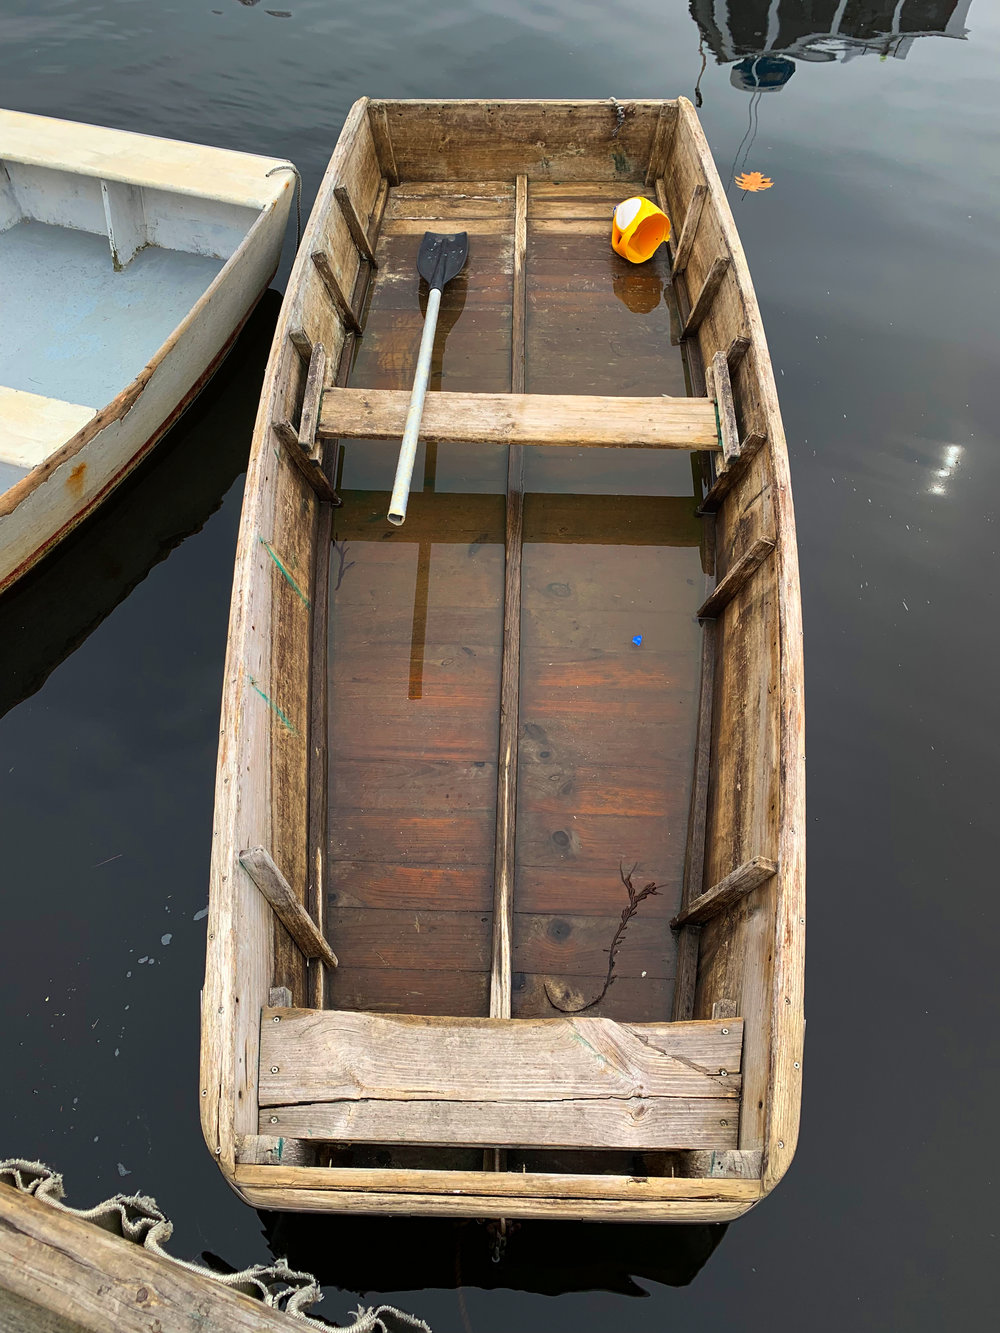 Brown Skiff, Perkins Cove